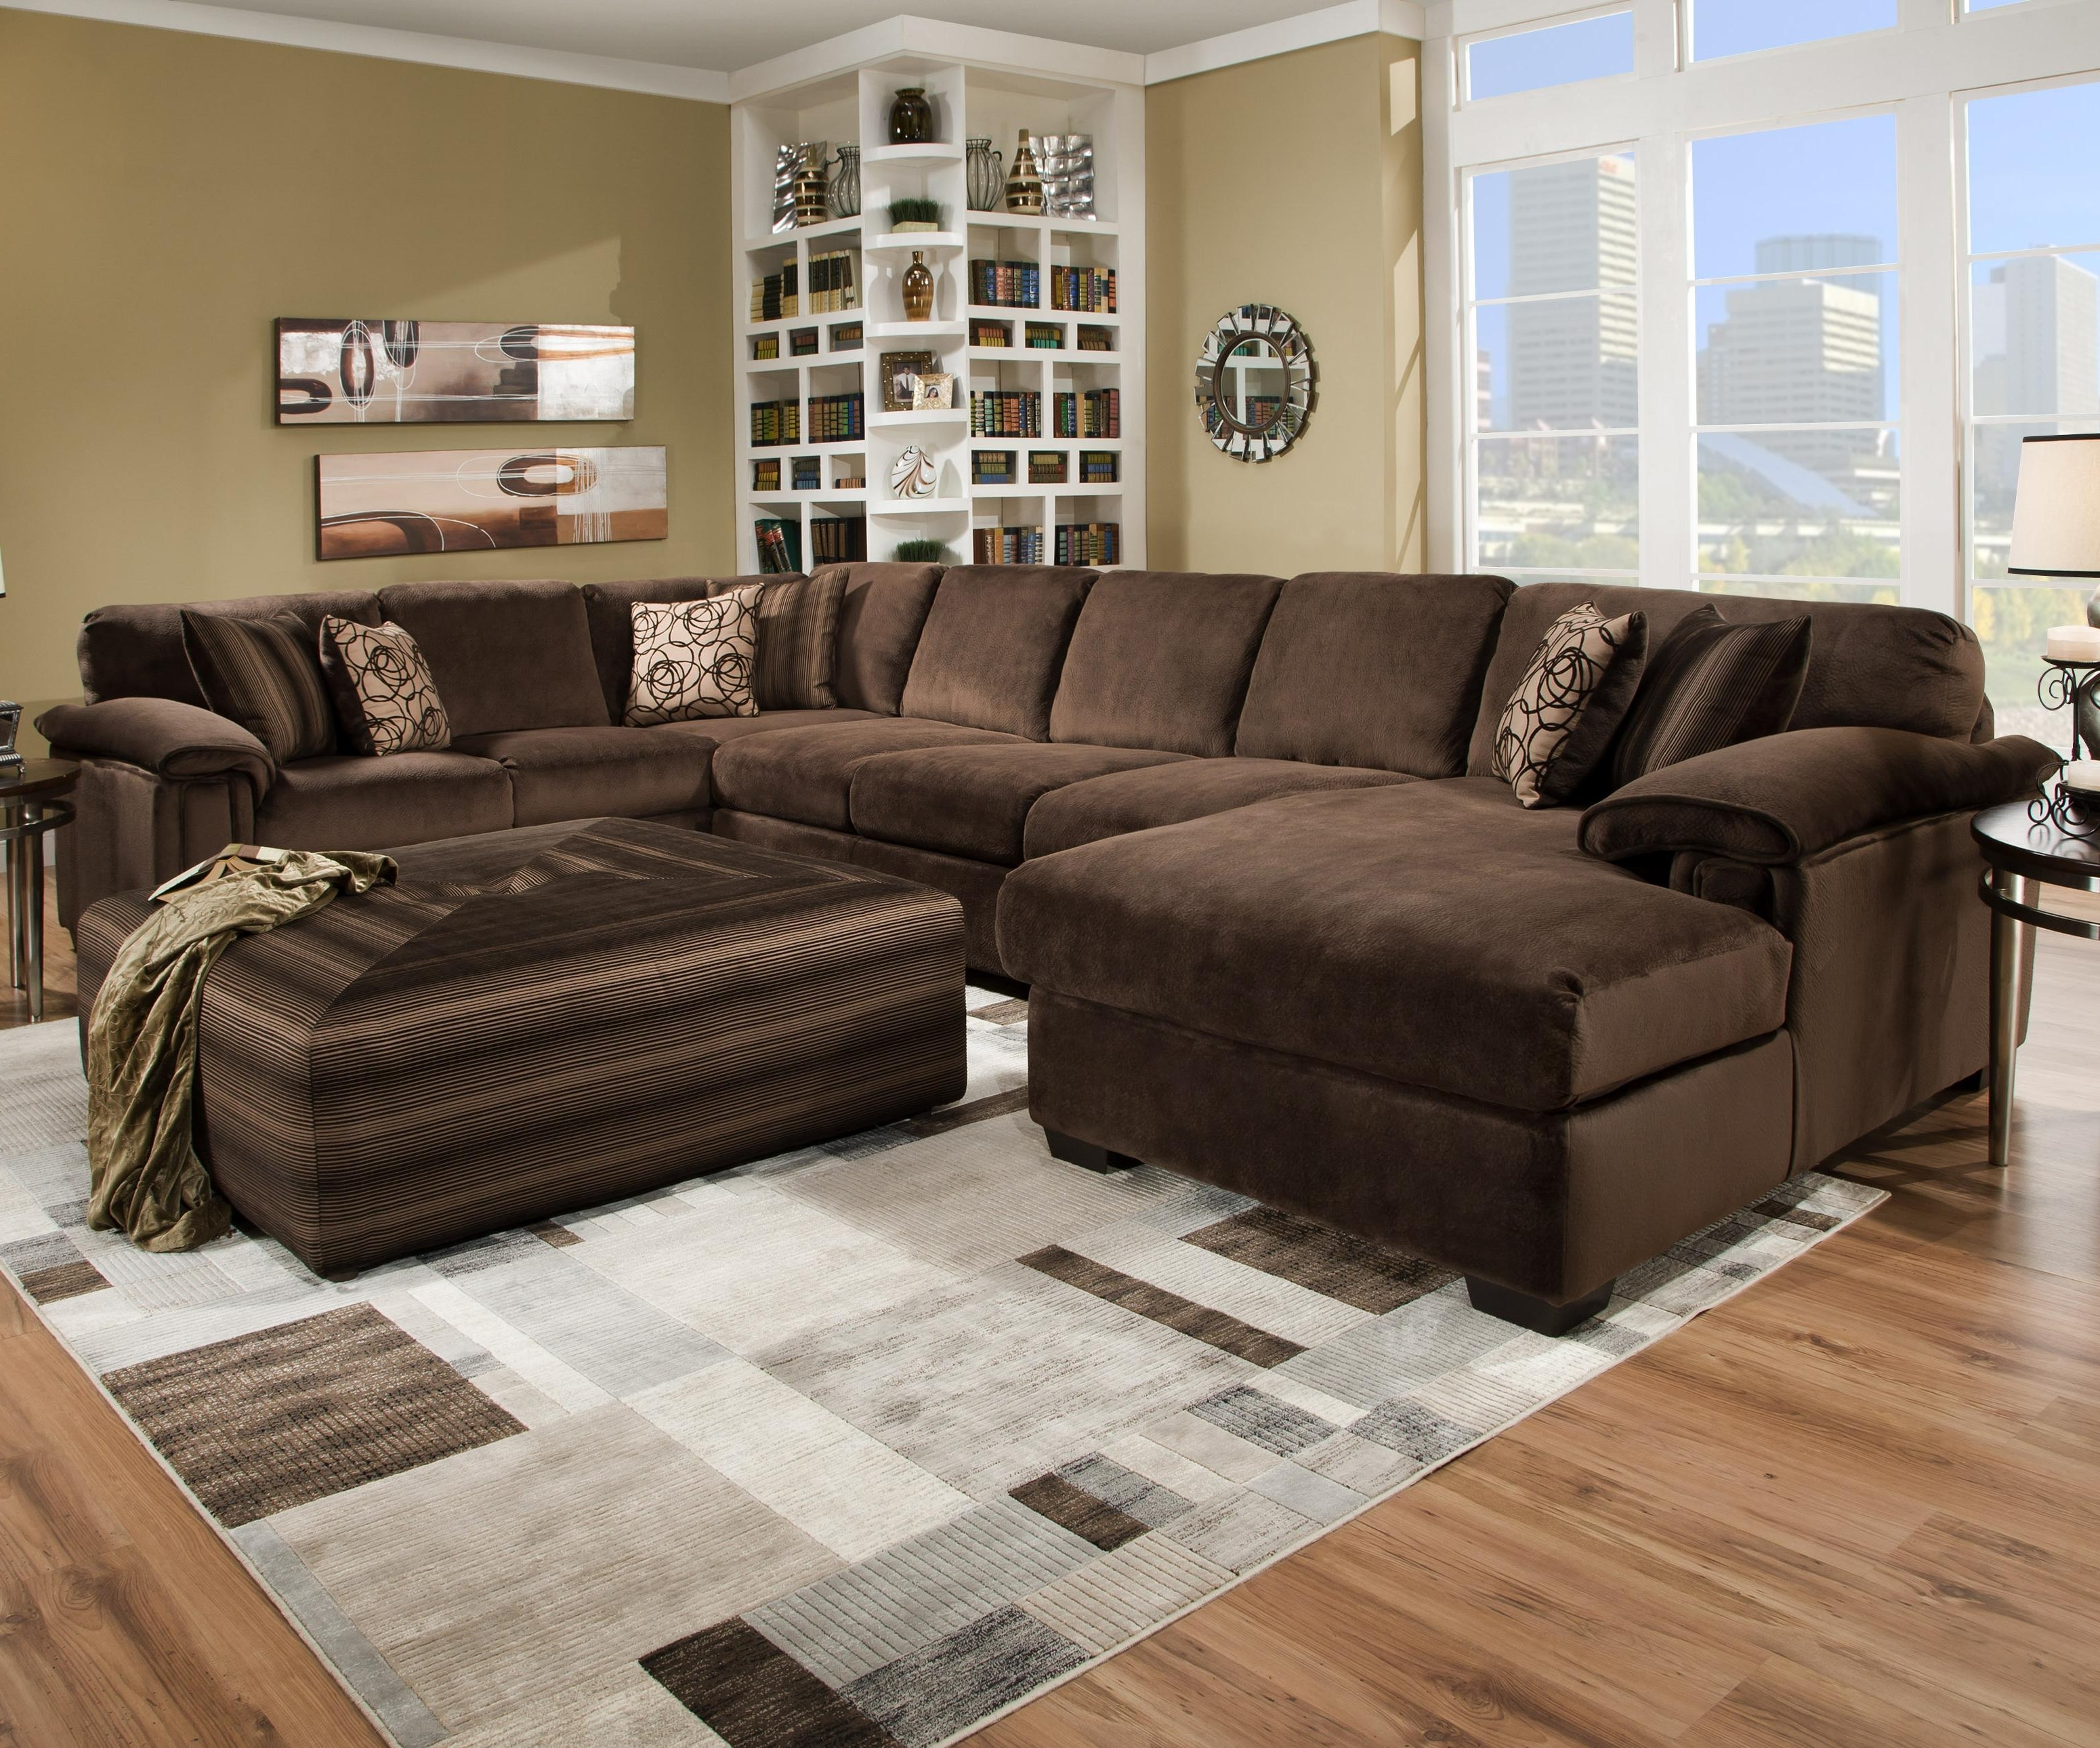 Most Current Sectional With Oversized Ottoman #11027 Pertaining To Sectionals With Oversized Ottoman (View 9 of 20)